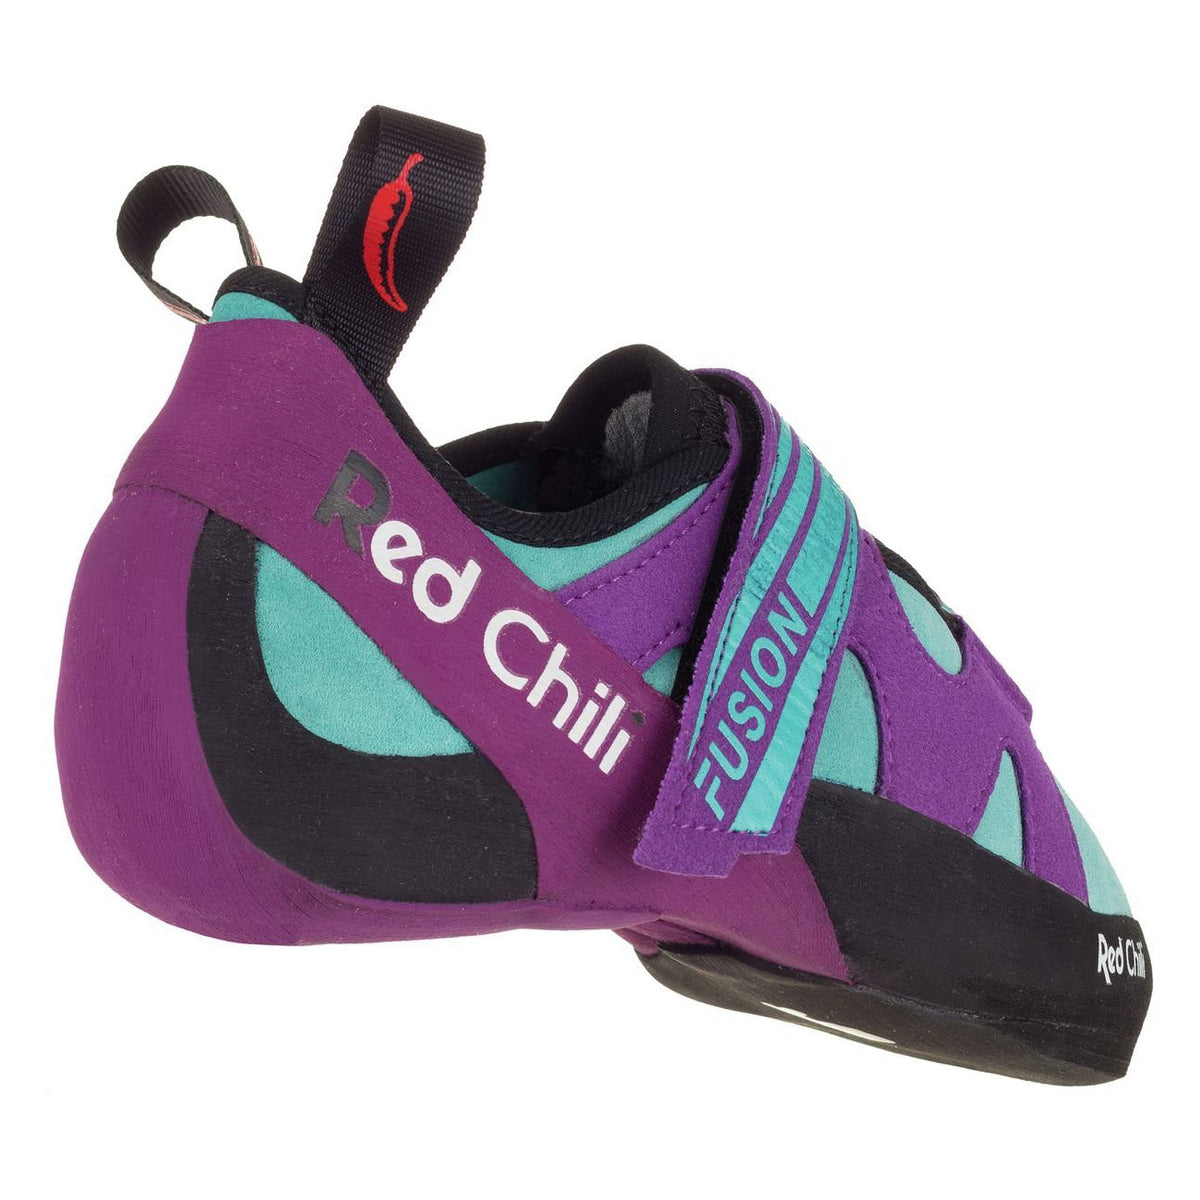 Red Chili Fusion VCR Womens climbing shoe, view from rear outer side